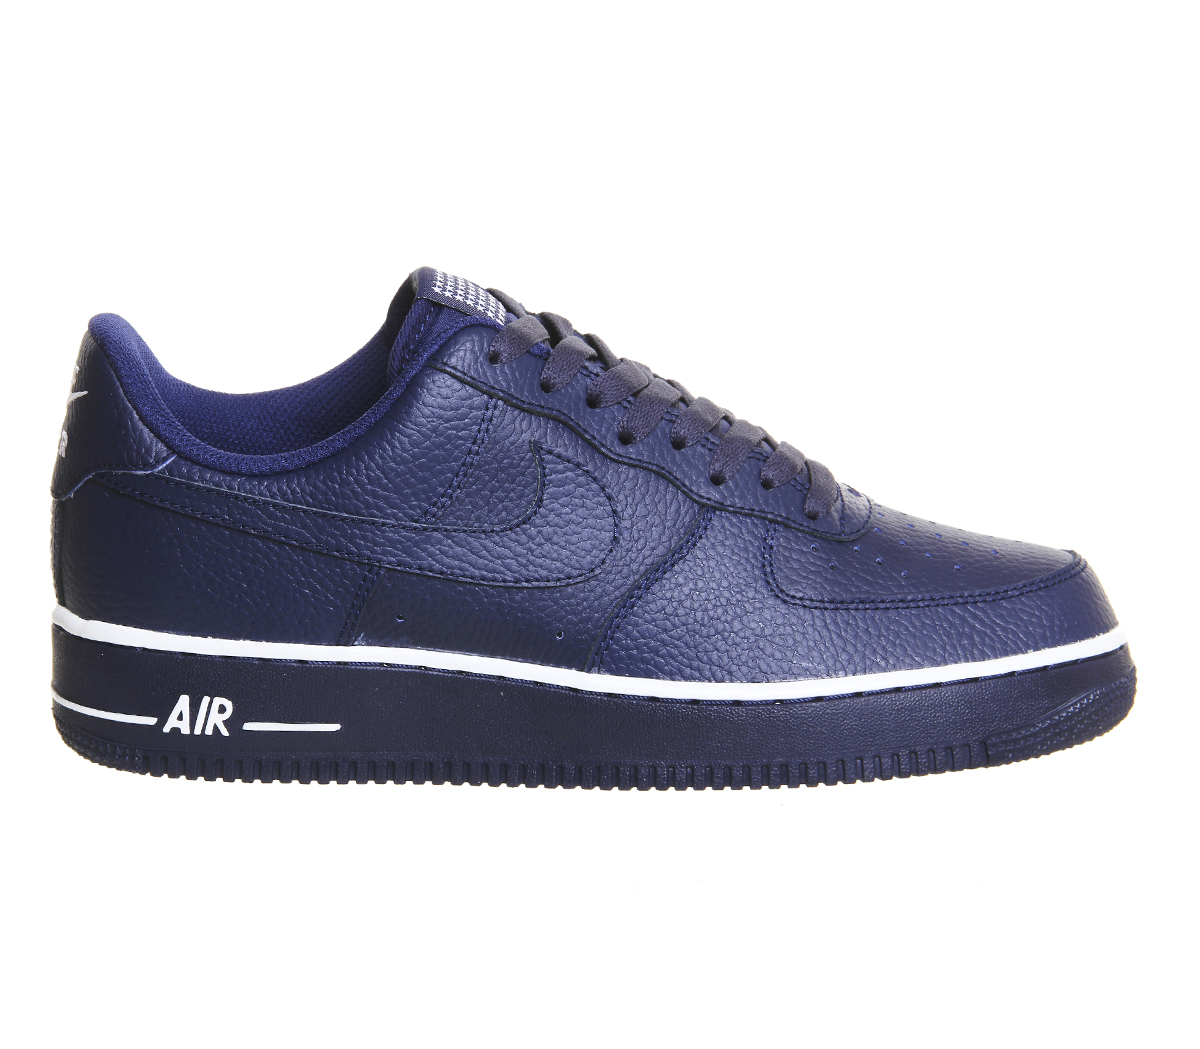 lyst nike air force one m in blue for men. Black Bedroom Furniture Sets. Home Design Ideas